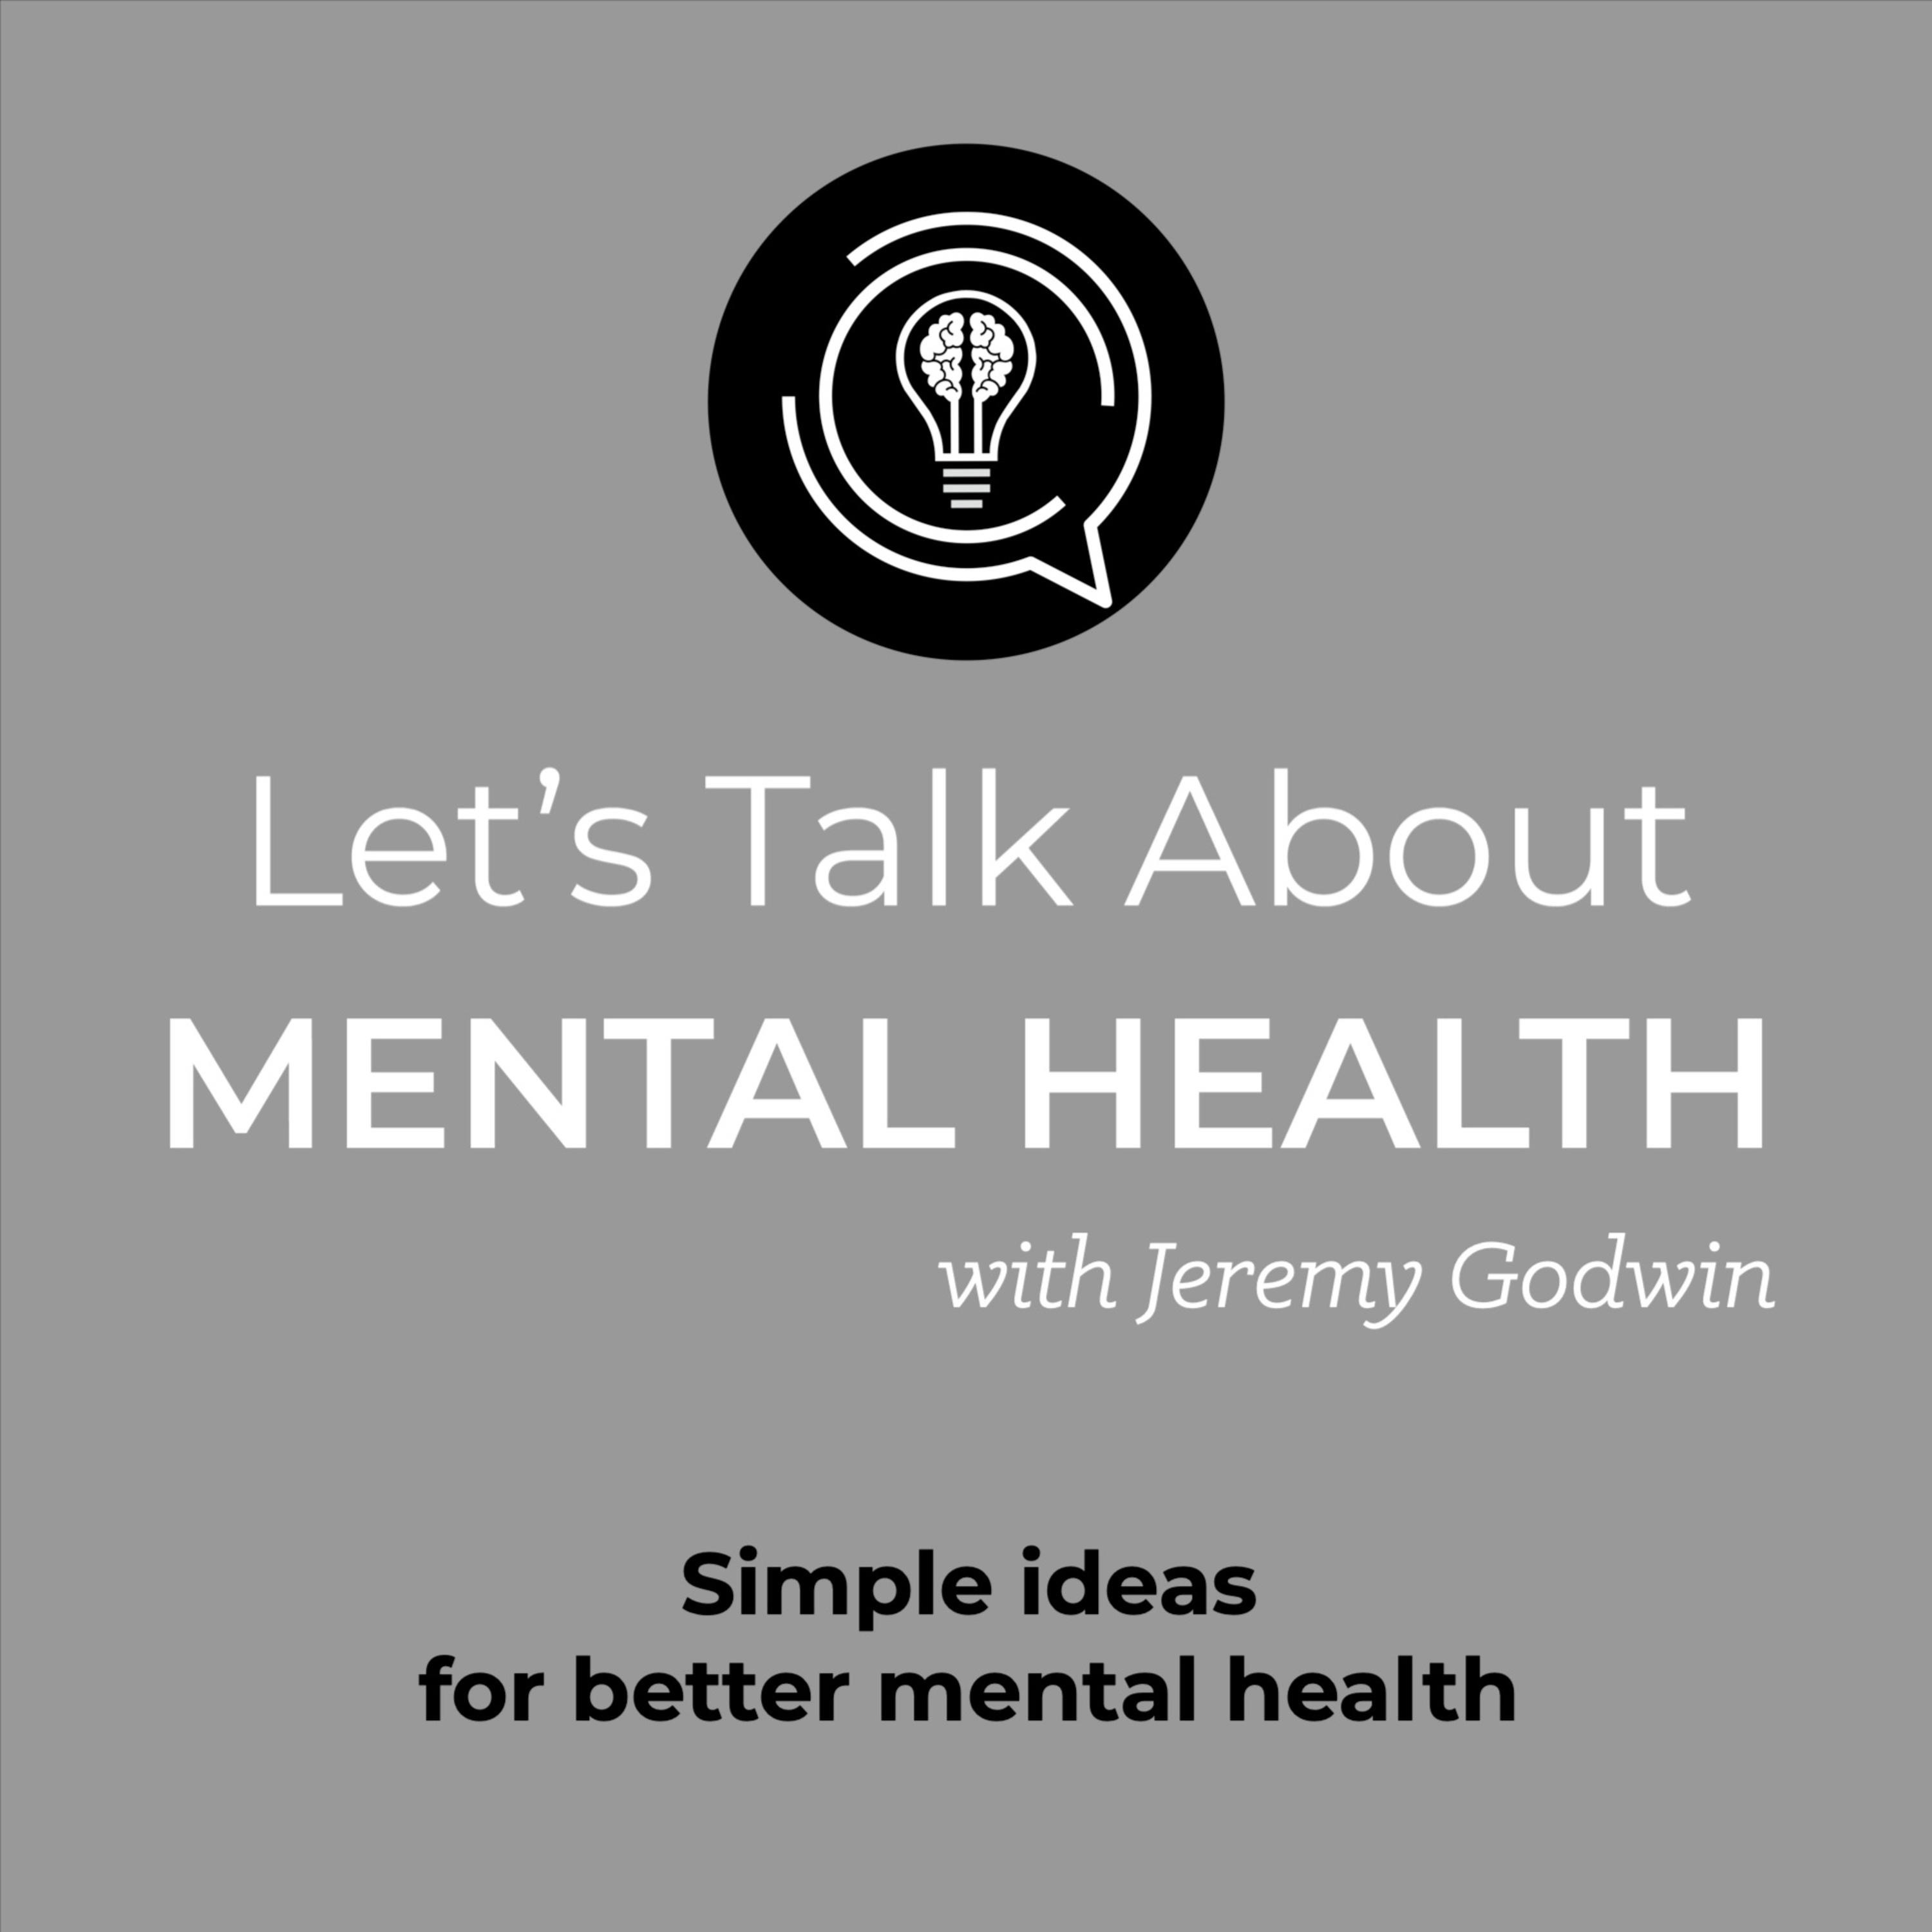 Let's Talk About Mental Health - A little message about some HUGE news!